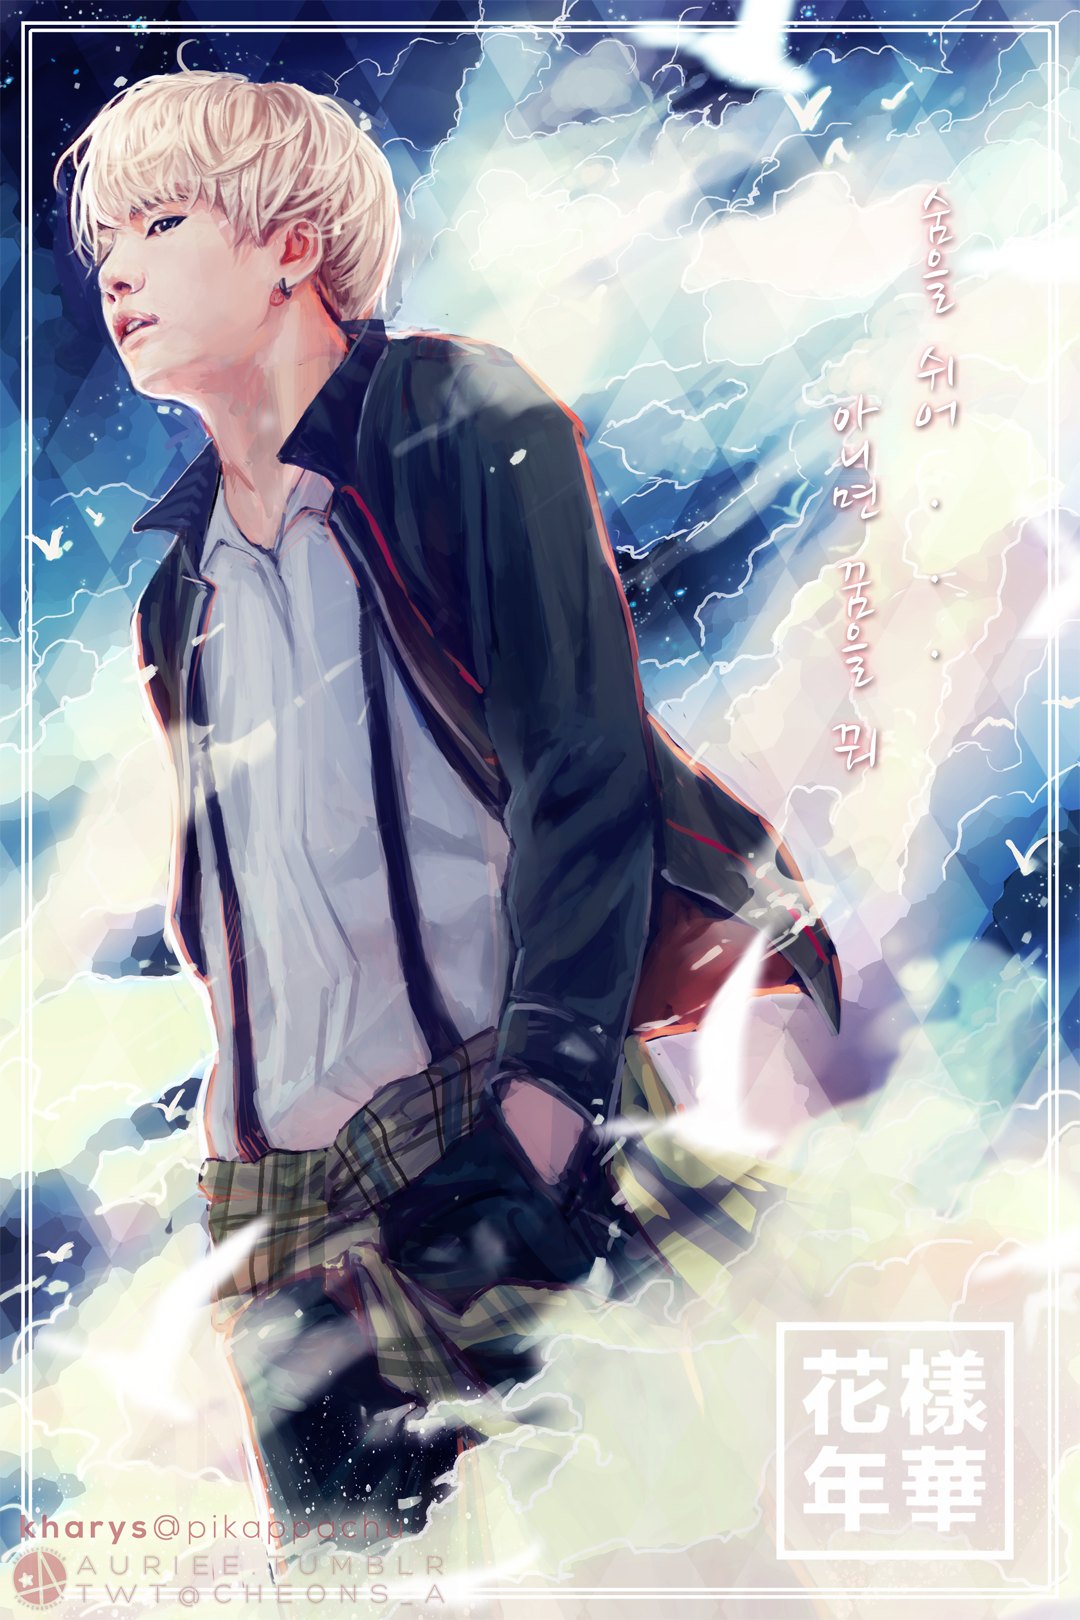 Suga iphone wallpaper tumblr - Intro Suga Fanart Collaboration With Progress Gif Here Please Do Not Edit Or Repost Without Permission